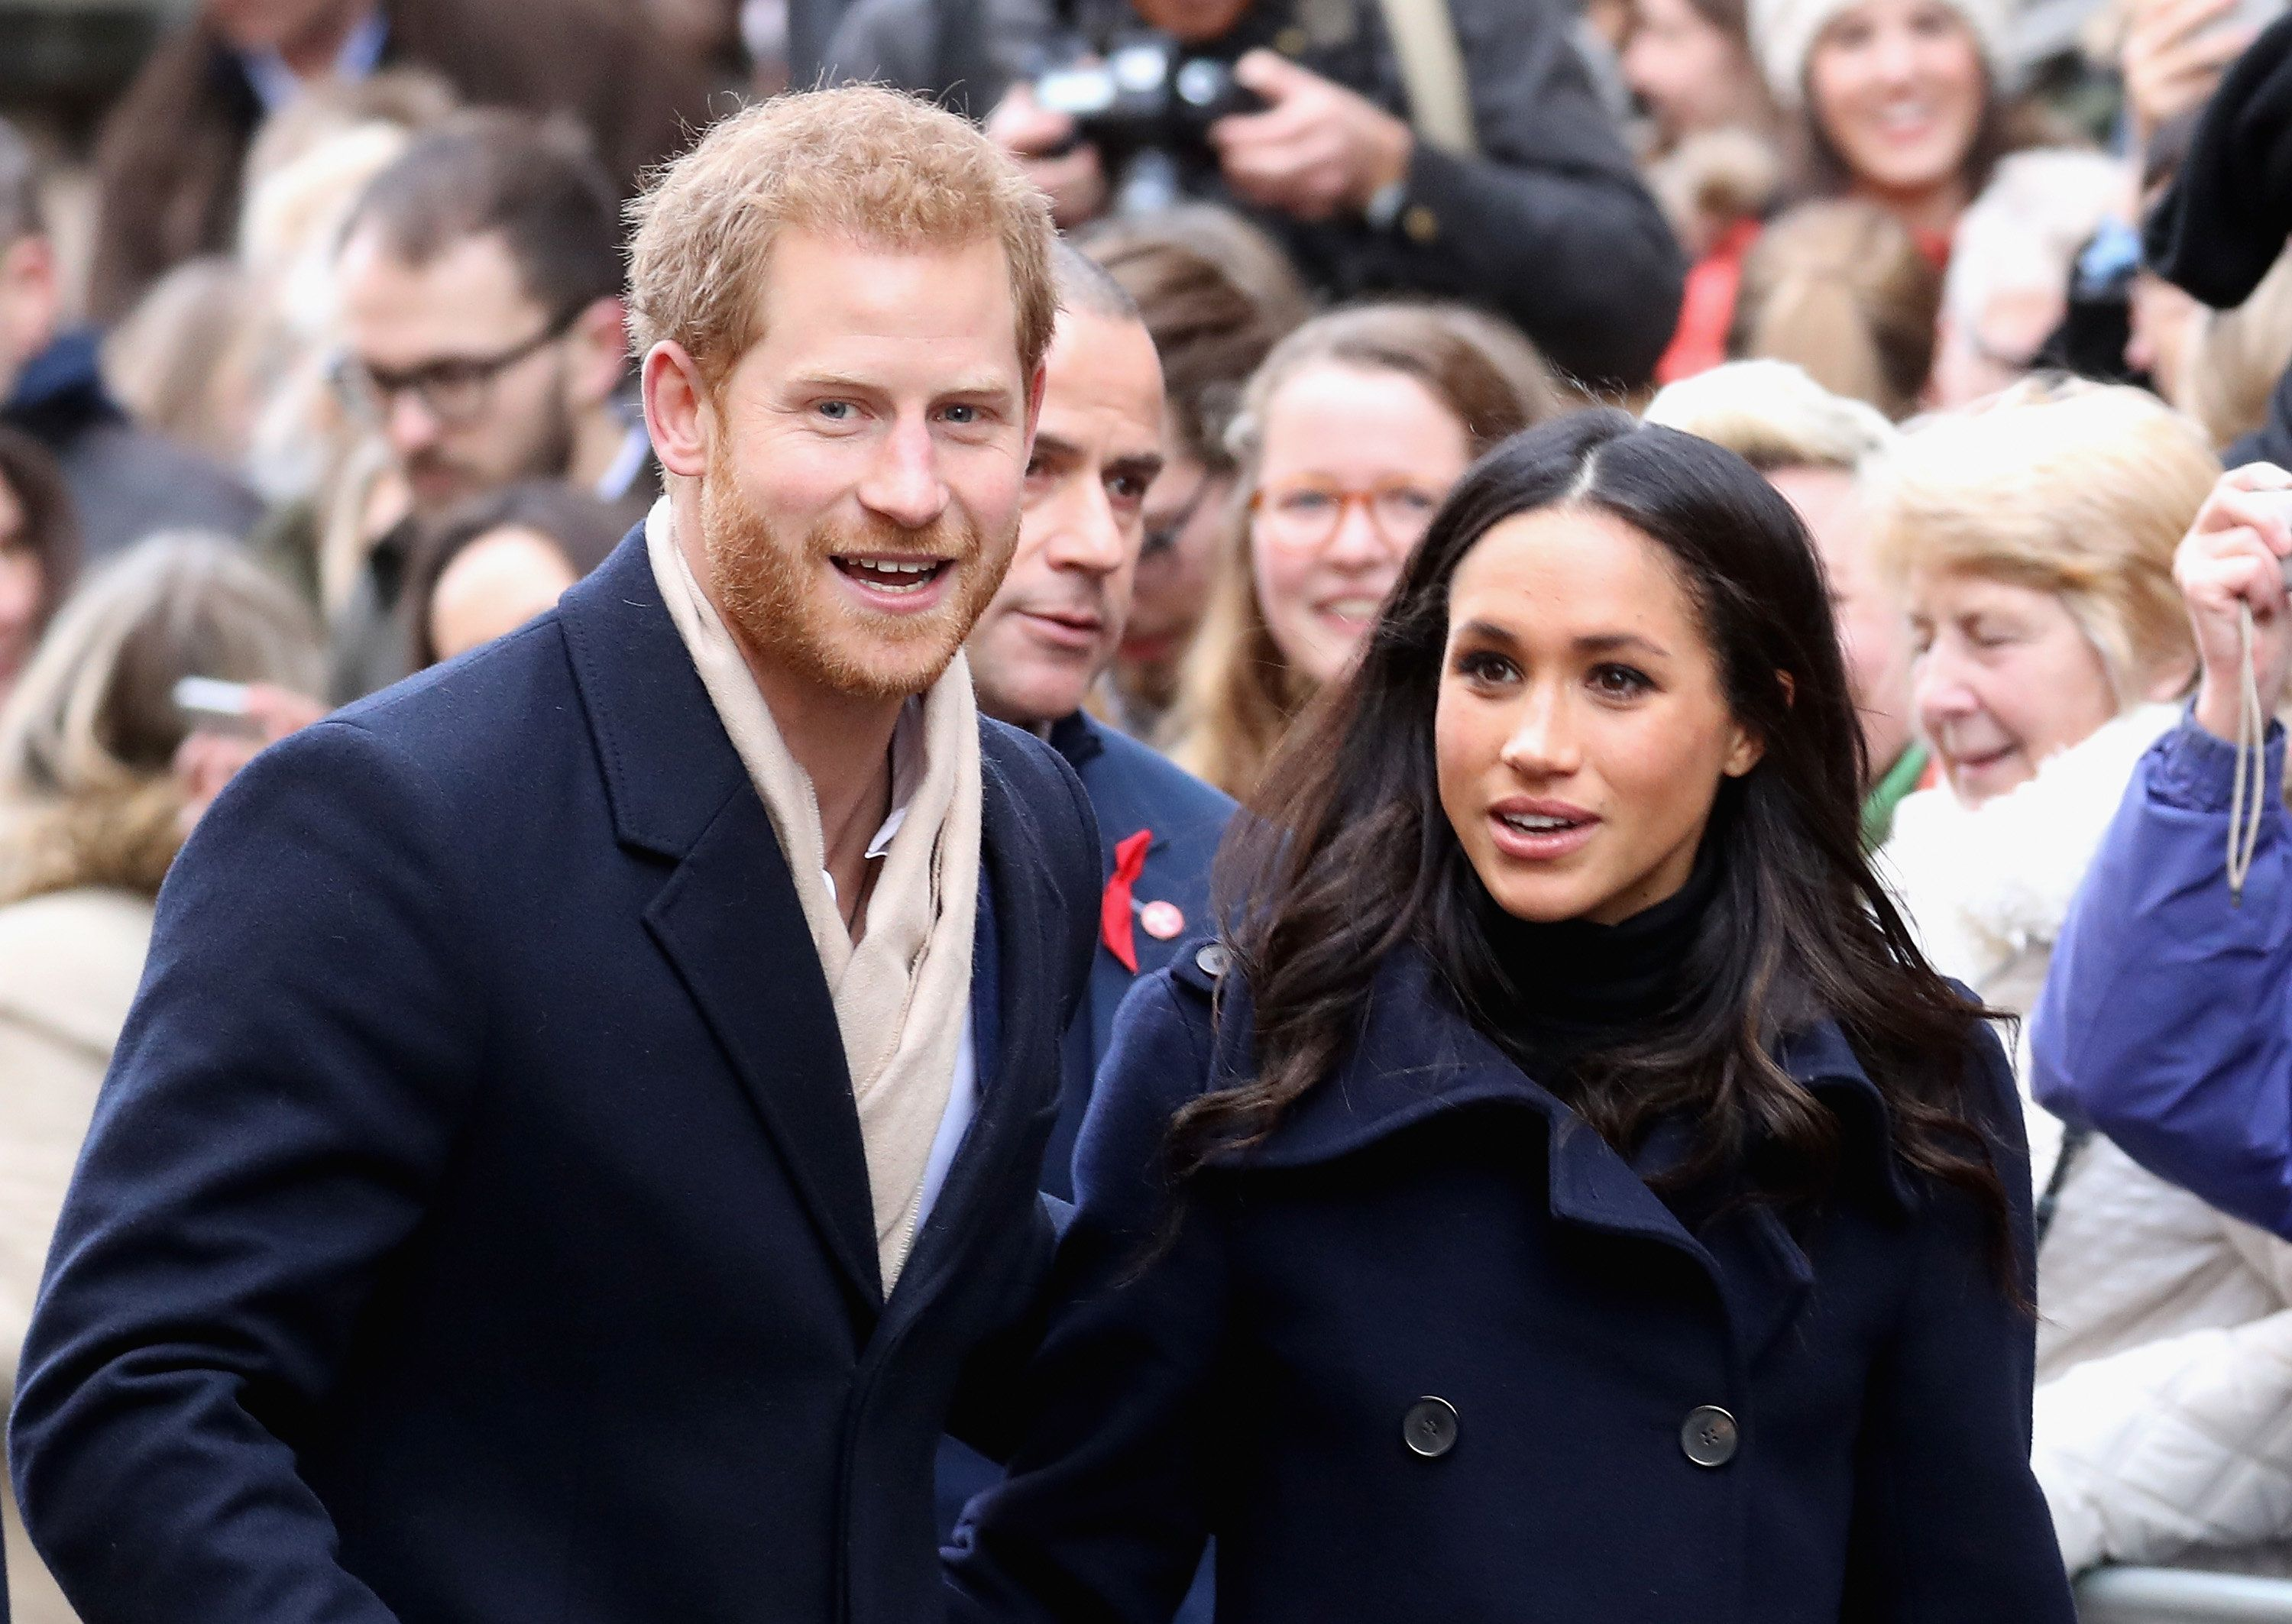 Royal Wears Racist Brooch to Queen's Christmas Lunch with Meghan Markle